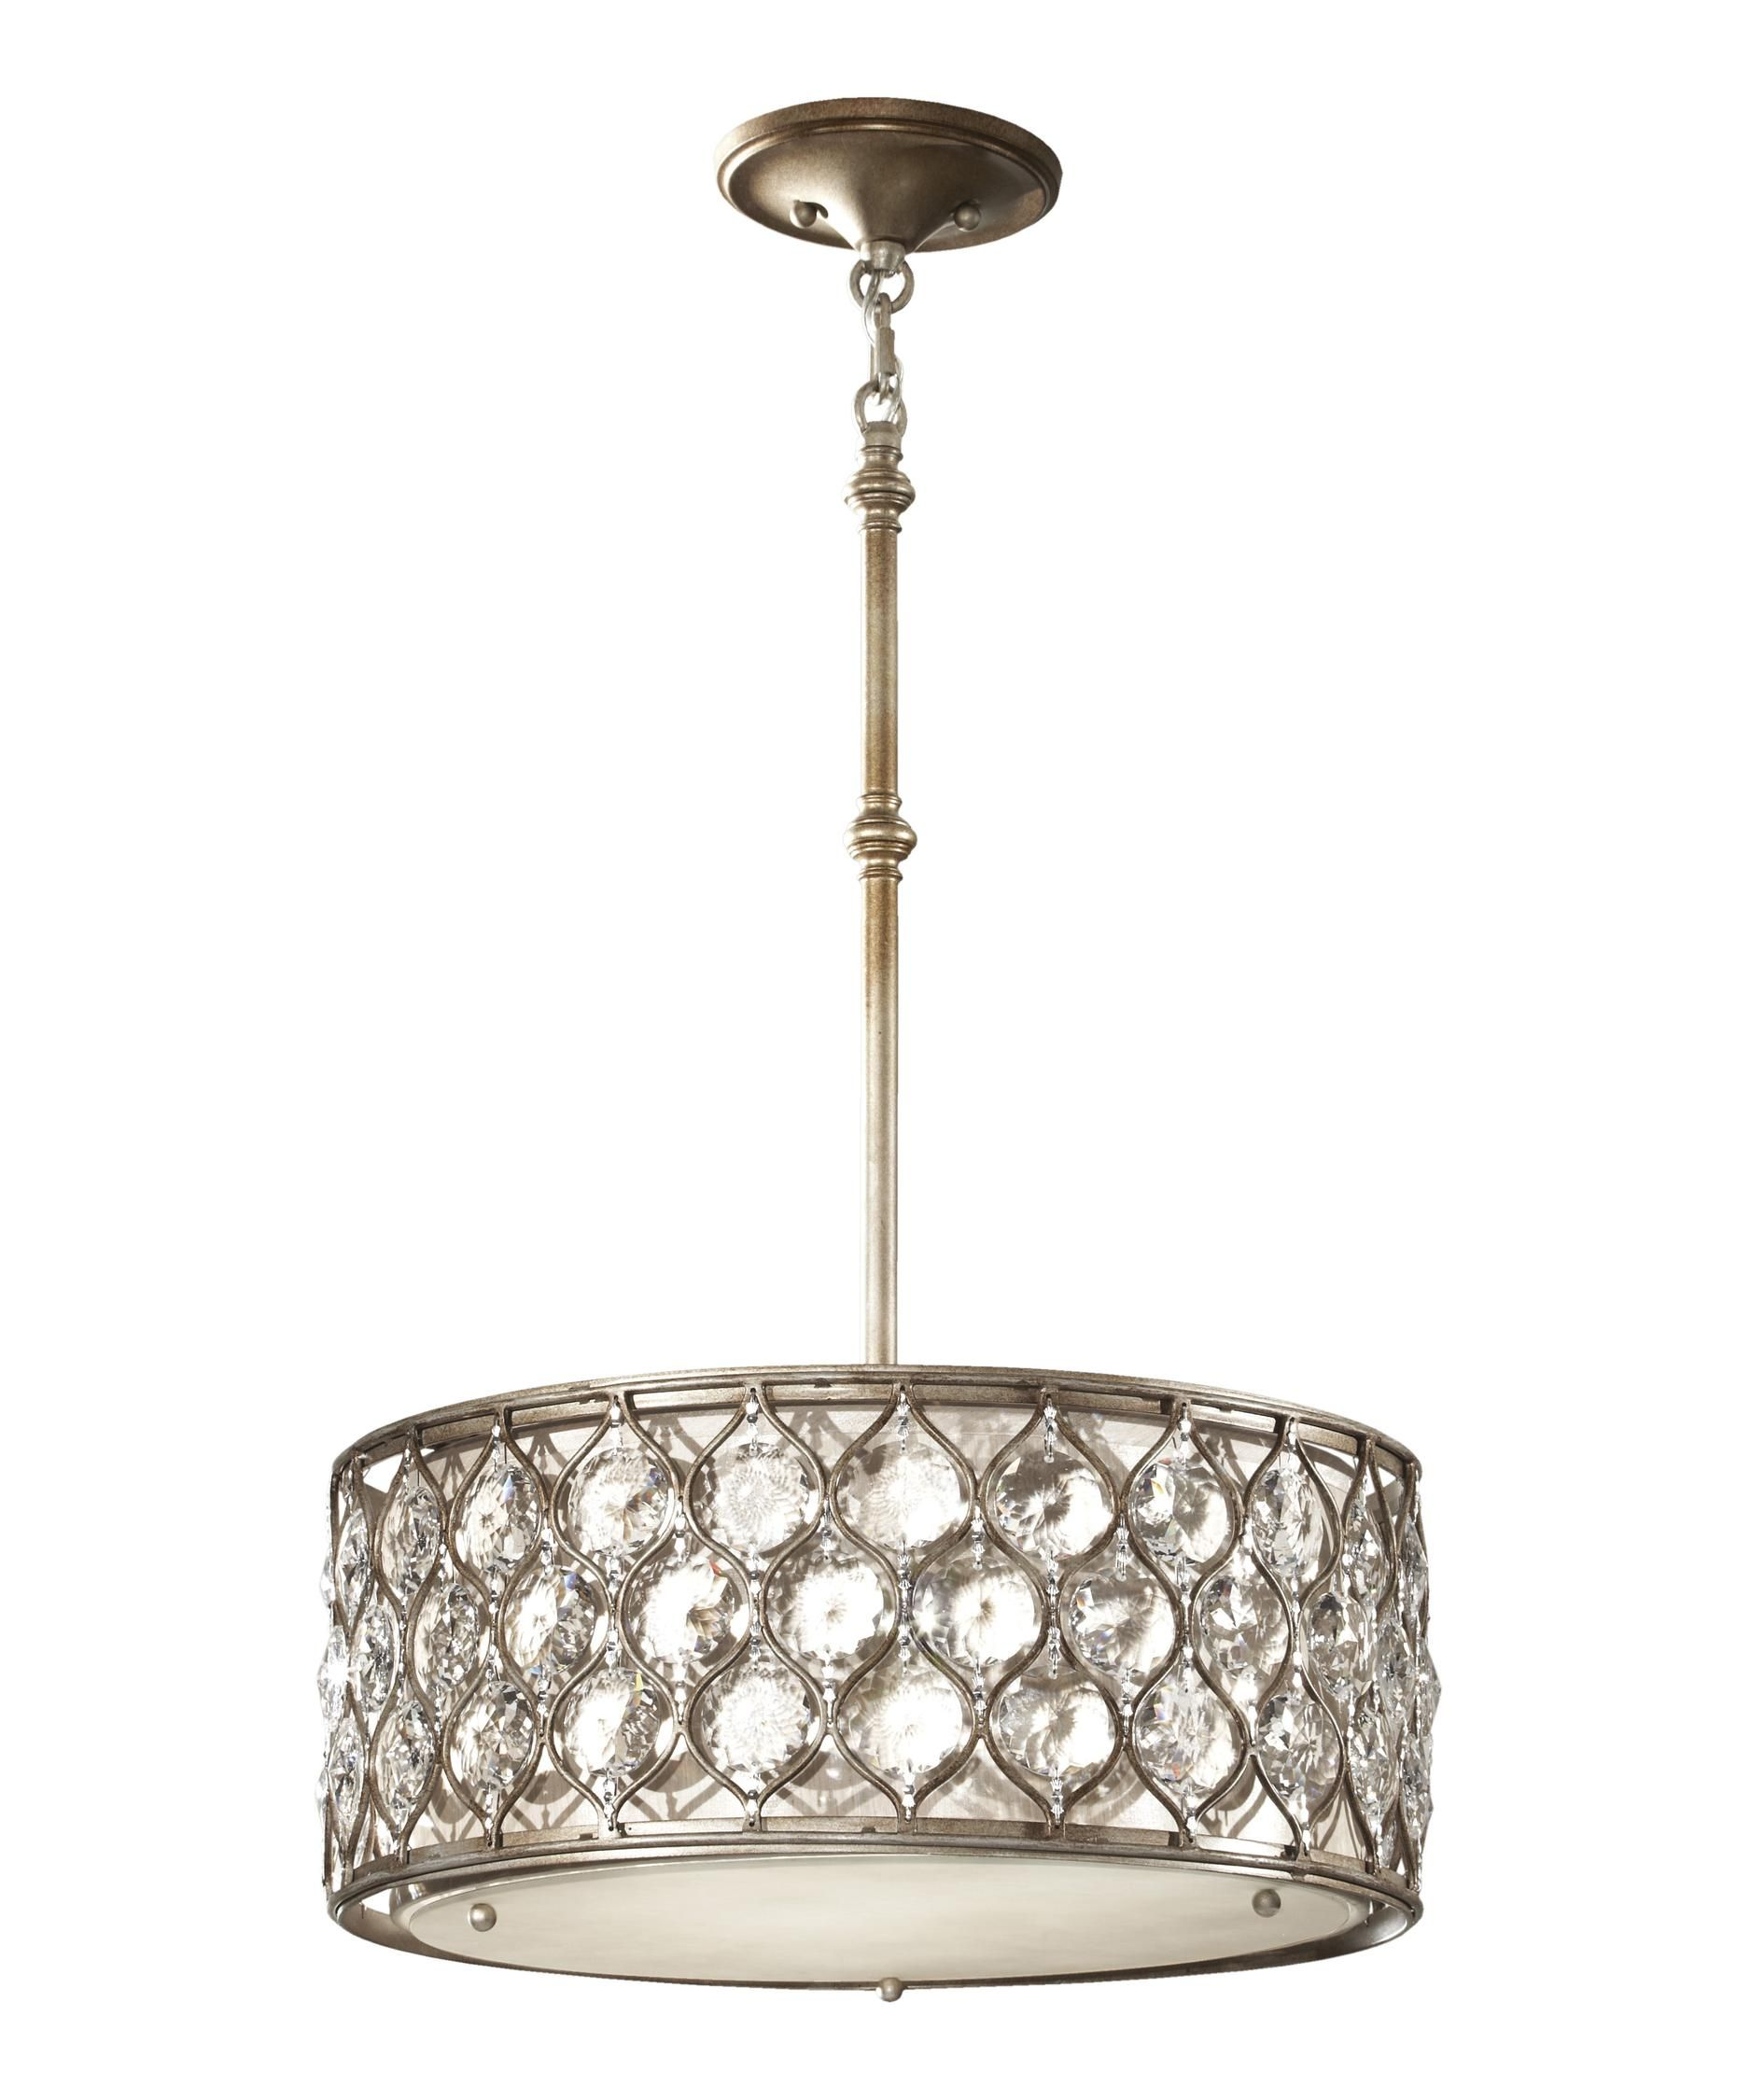 Feiss Lucia 17 Inch Large Pendant By Generation Lighting With